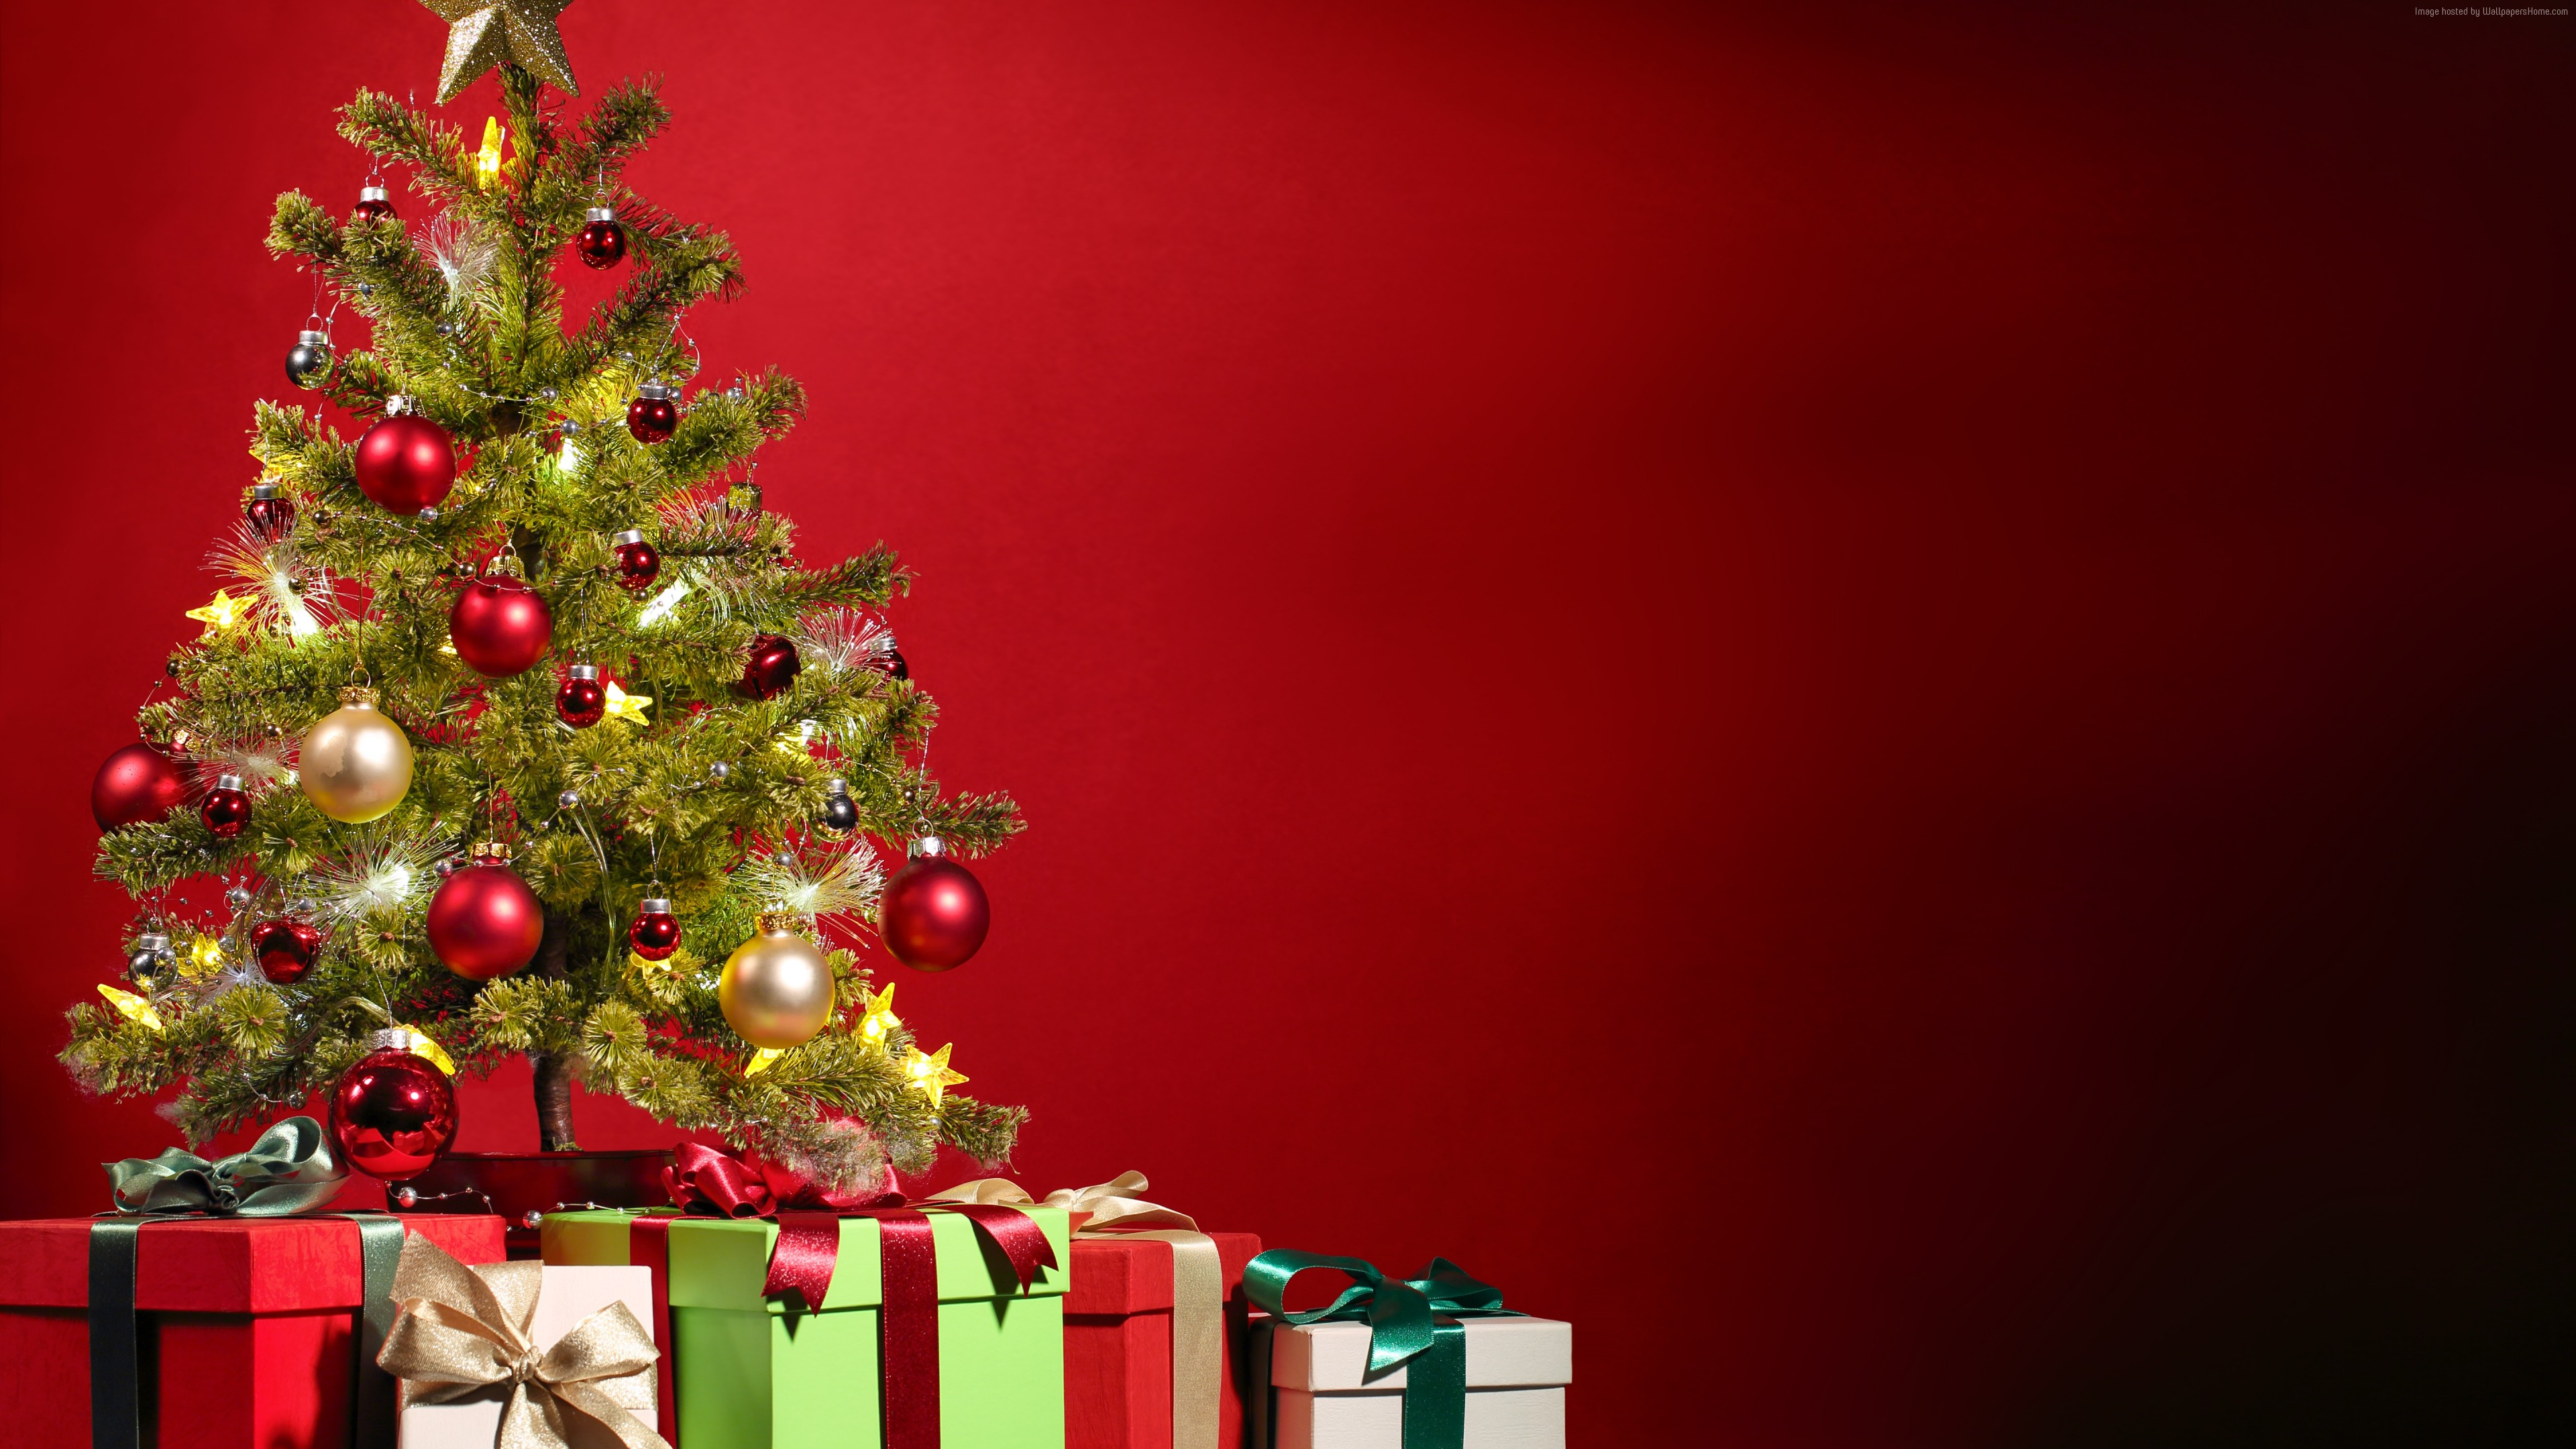 Wallpaper Christmas, New Year, Gifts, Fir Tree, Red, 5K, Holidays 5K,